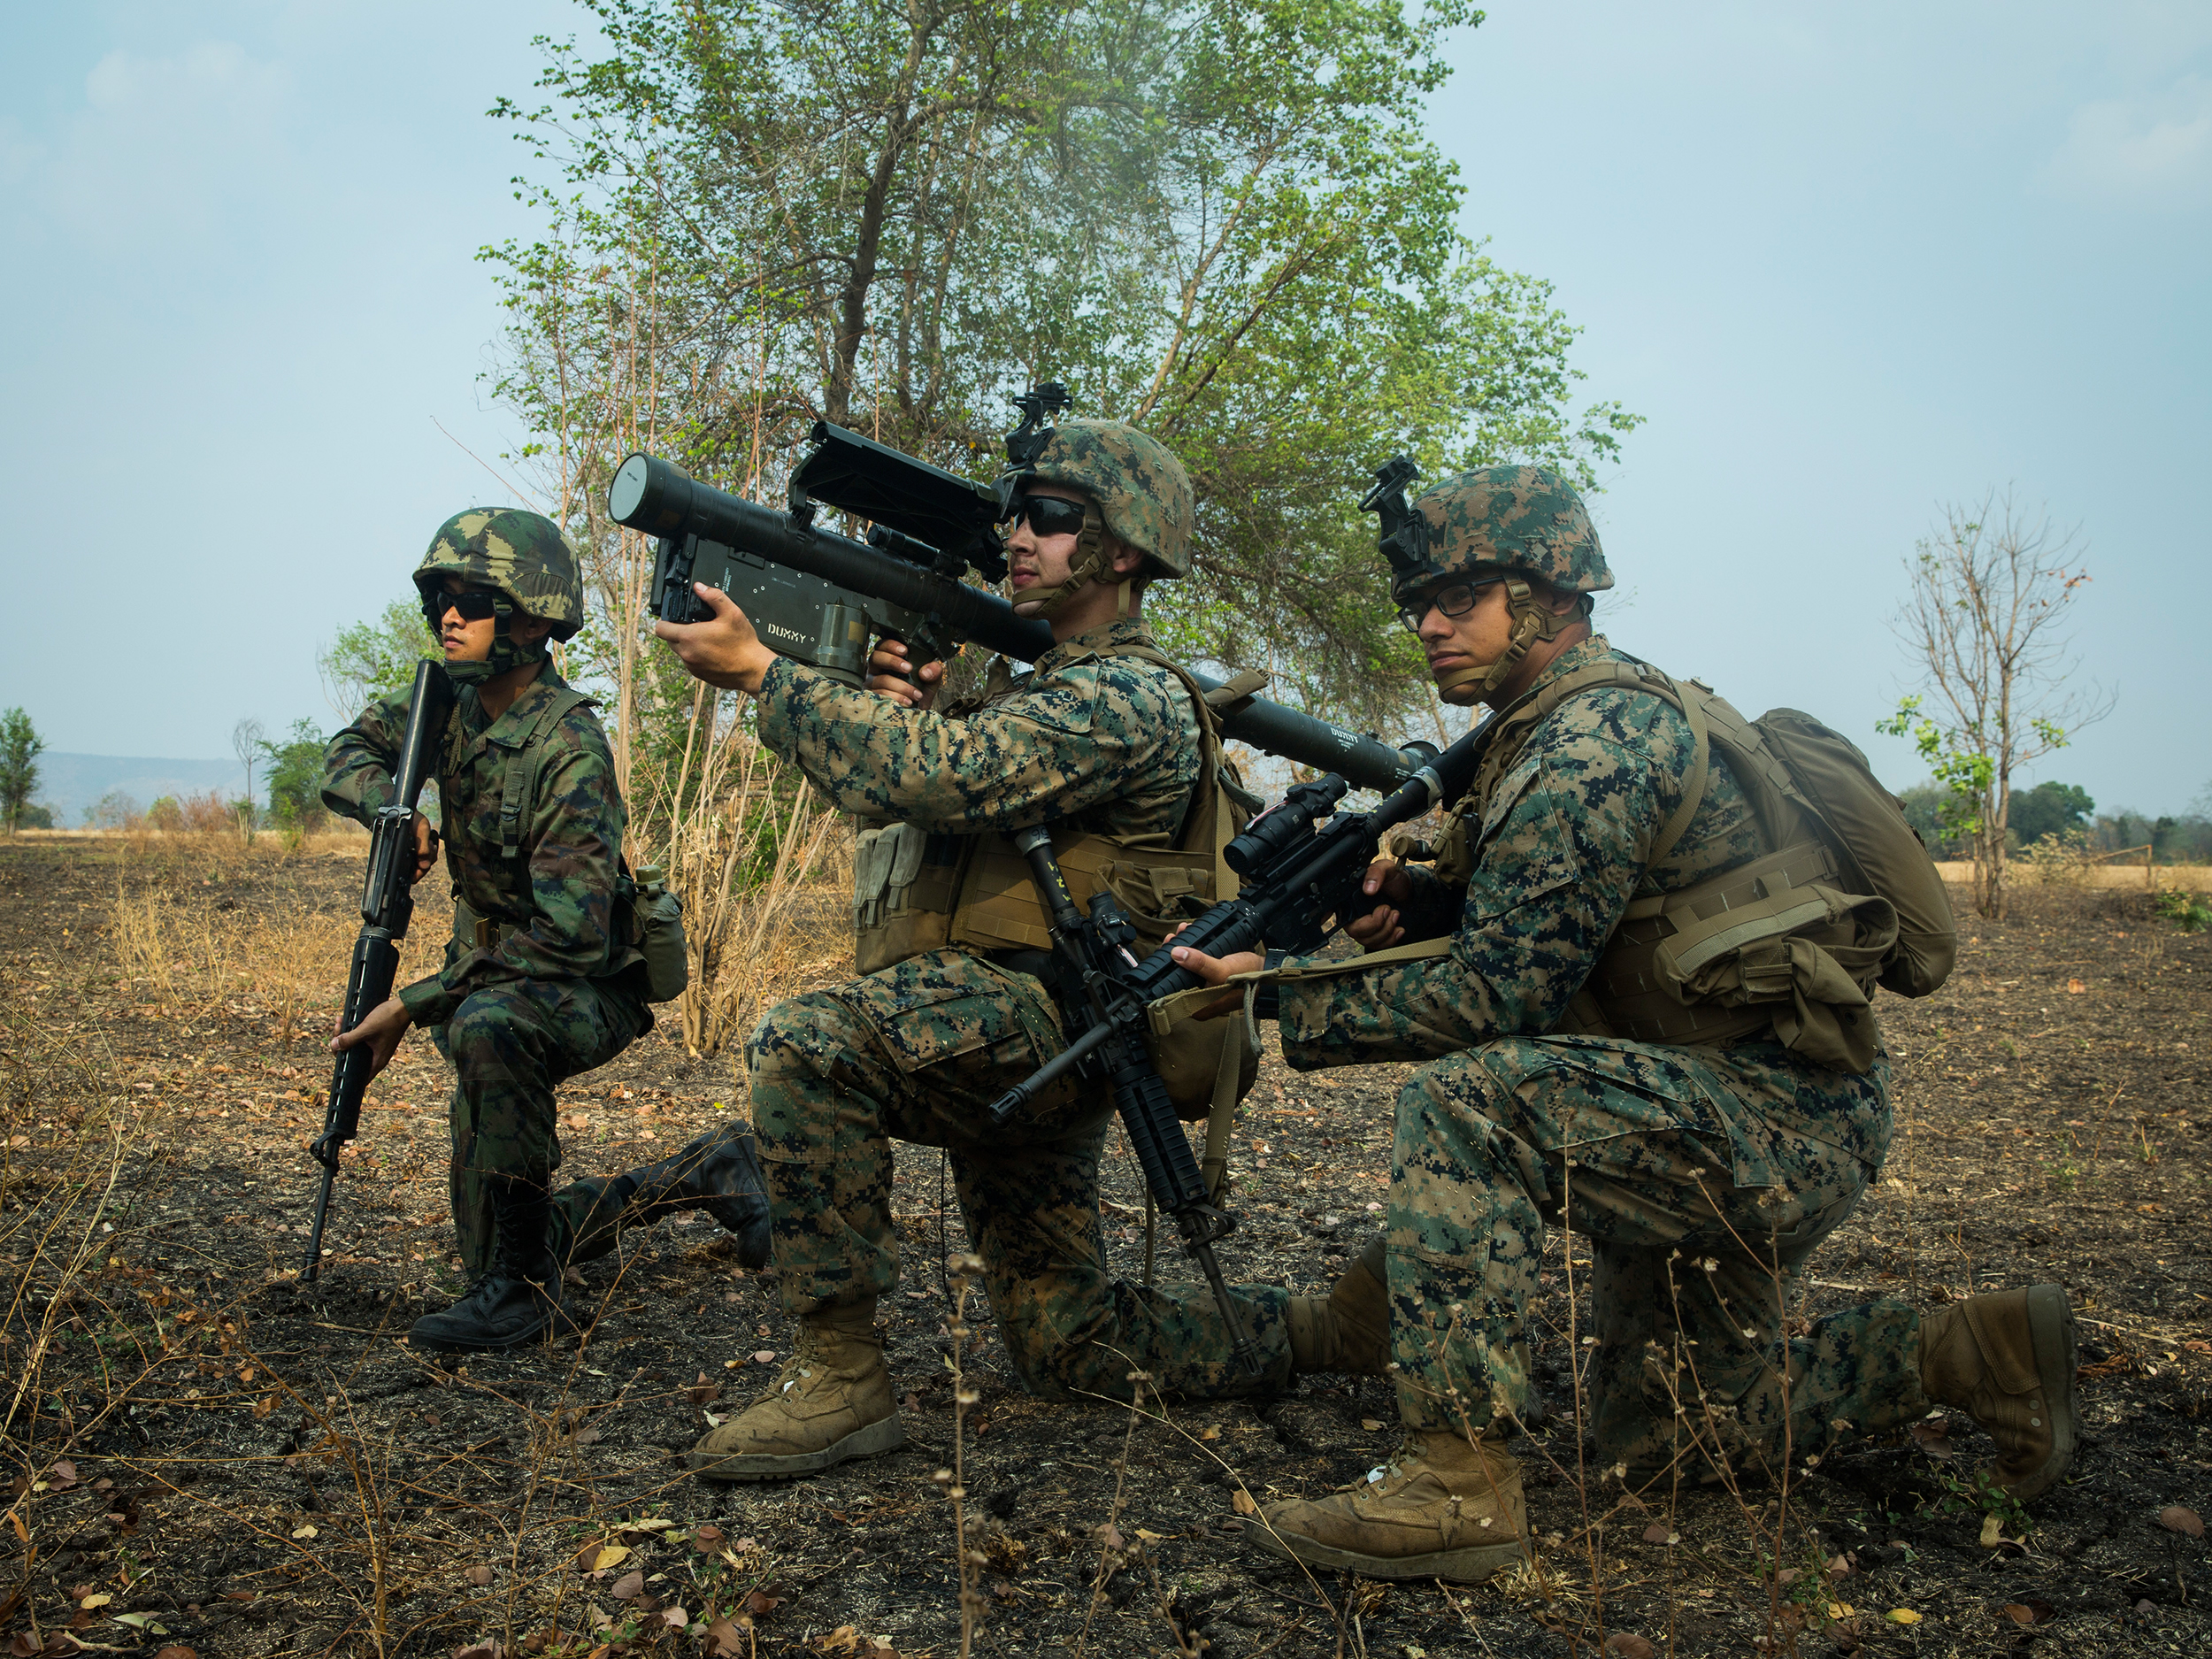 A U.S. Marine and Royal Thai Marine hold security as another Marine sights in with an FIM-92A Stinger missile launcher on March 2, 2020, during a combined joint High Mobility Rocket System rapid insertion as part of Cobra Gold 2020 at Chandy Range, Kingdom of Thailand. (Sgt. Audrey M. C. Rampton/Marine Corps)